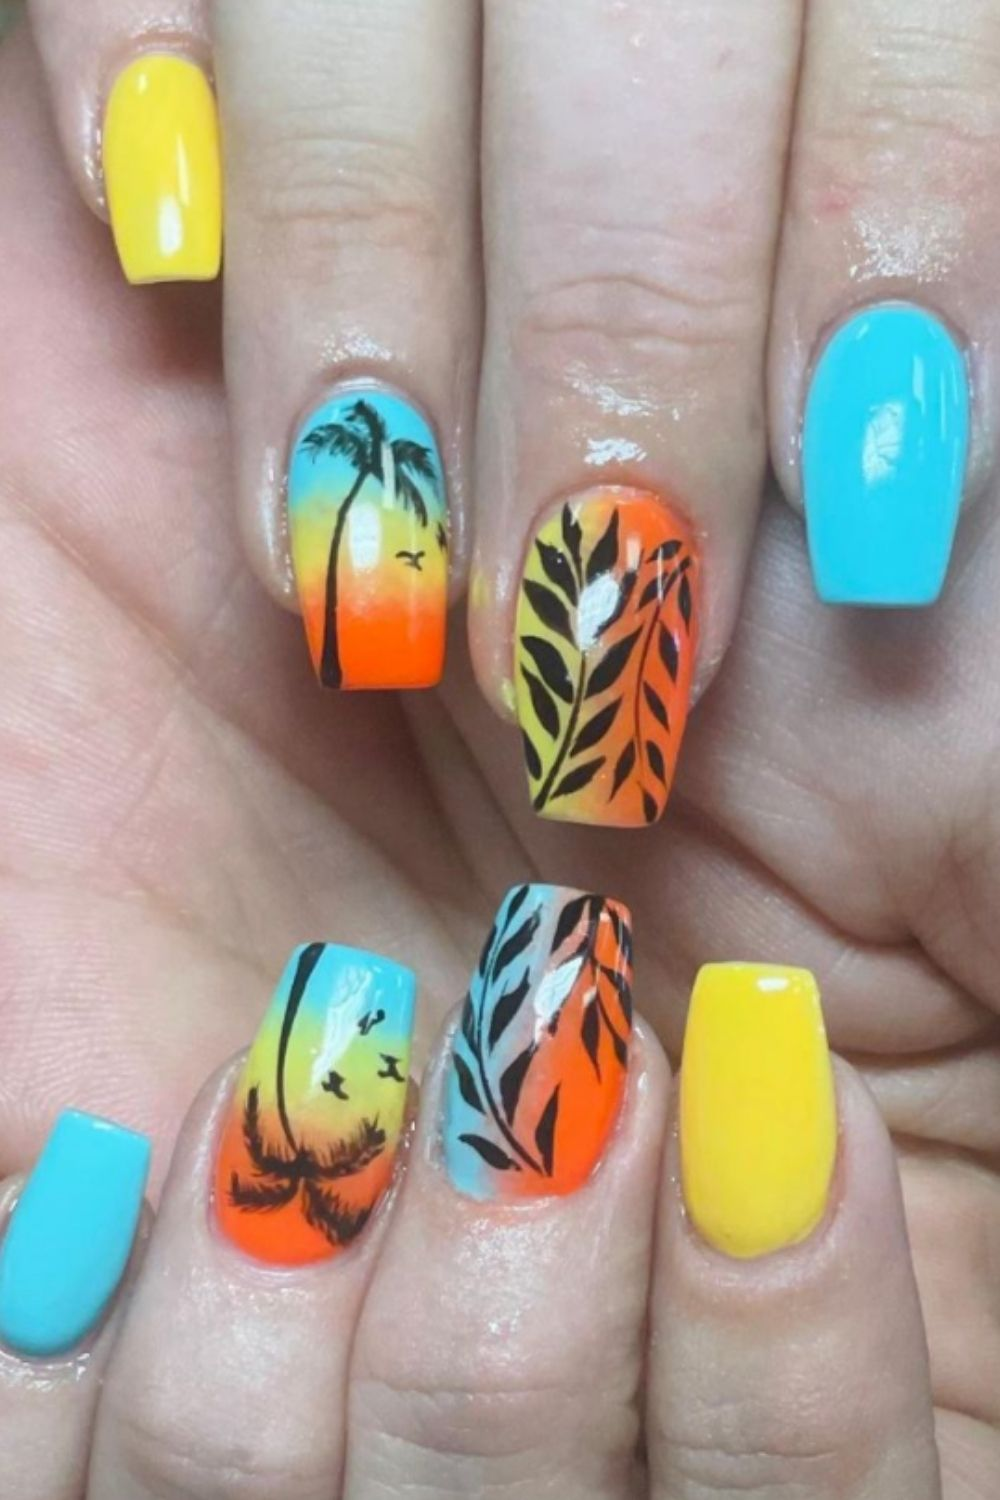 The perfect summer nail should be some green trees and some birds